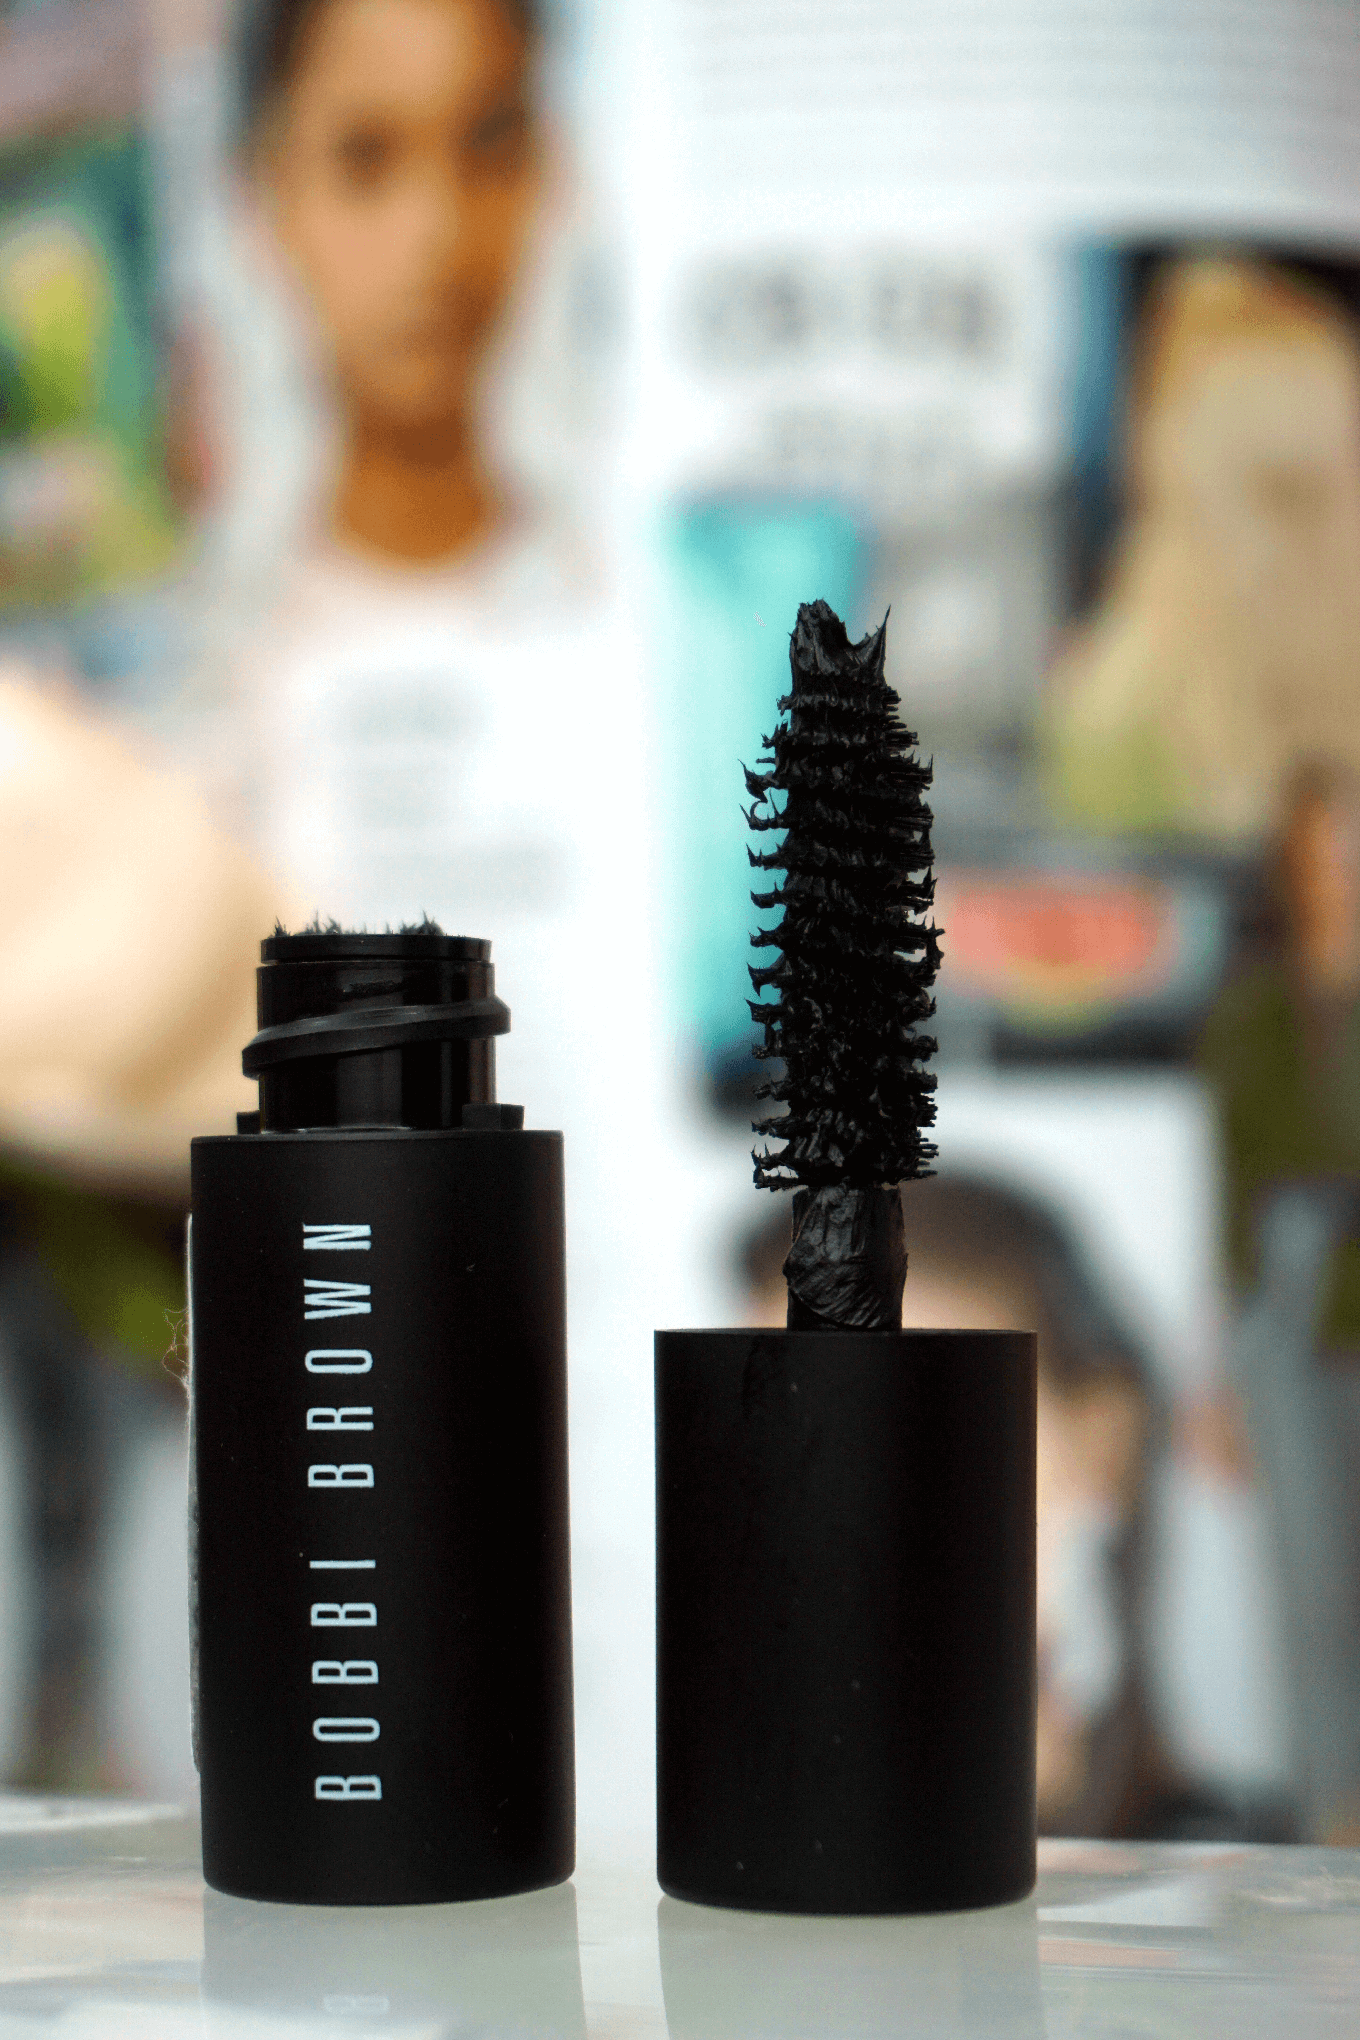 Sephora Play Reviews Play By Sephora Review July 2017 | Eye Opening Mascara by Bobbi Brown New | Chiclypoised | Chiclypoised.com